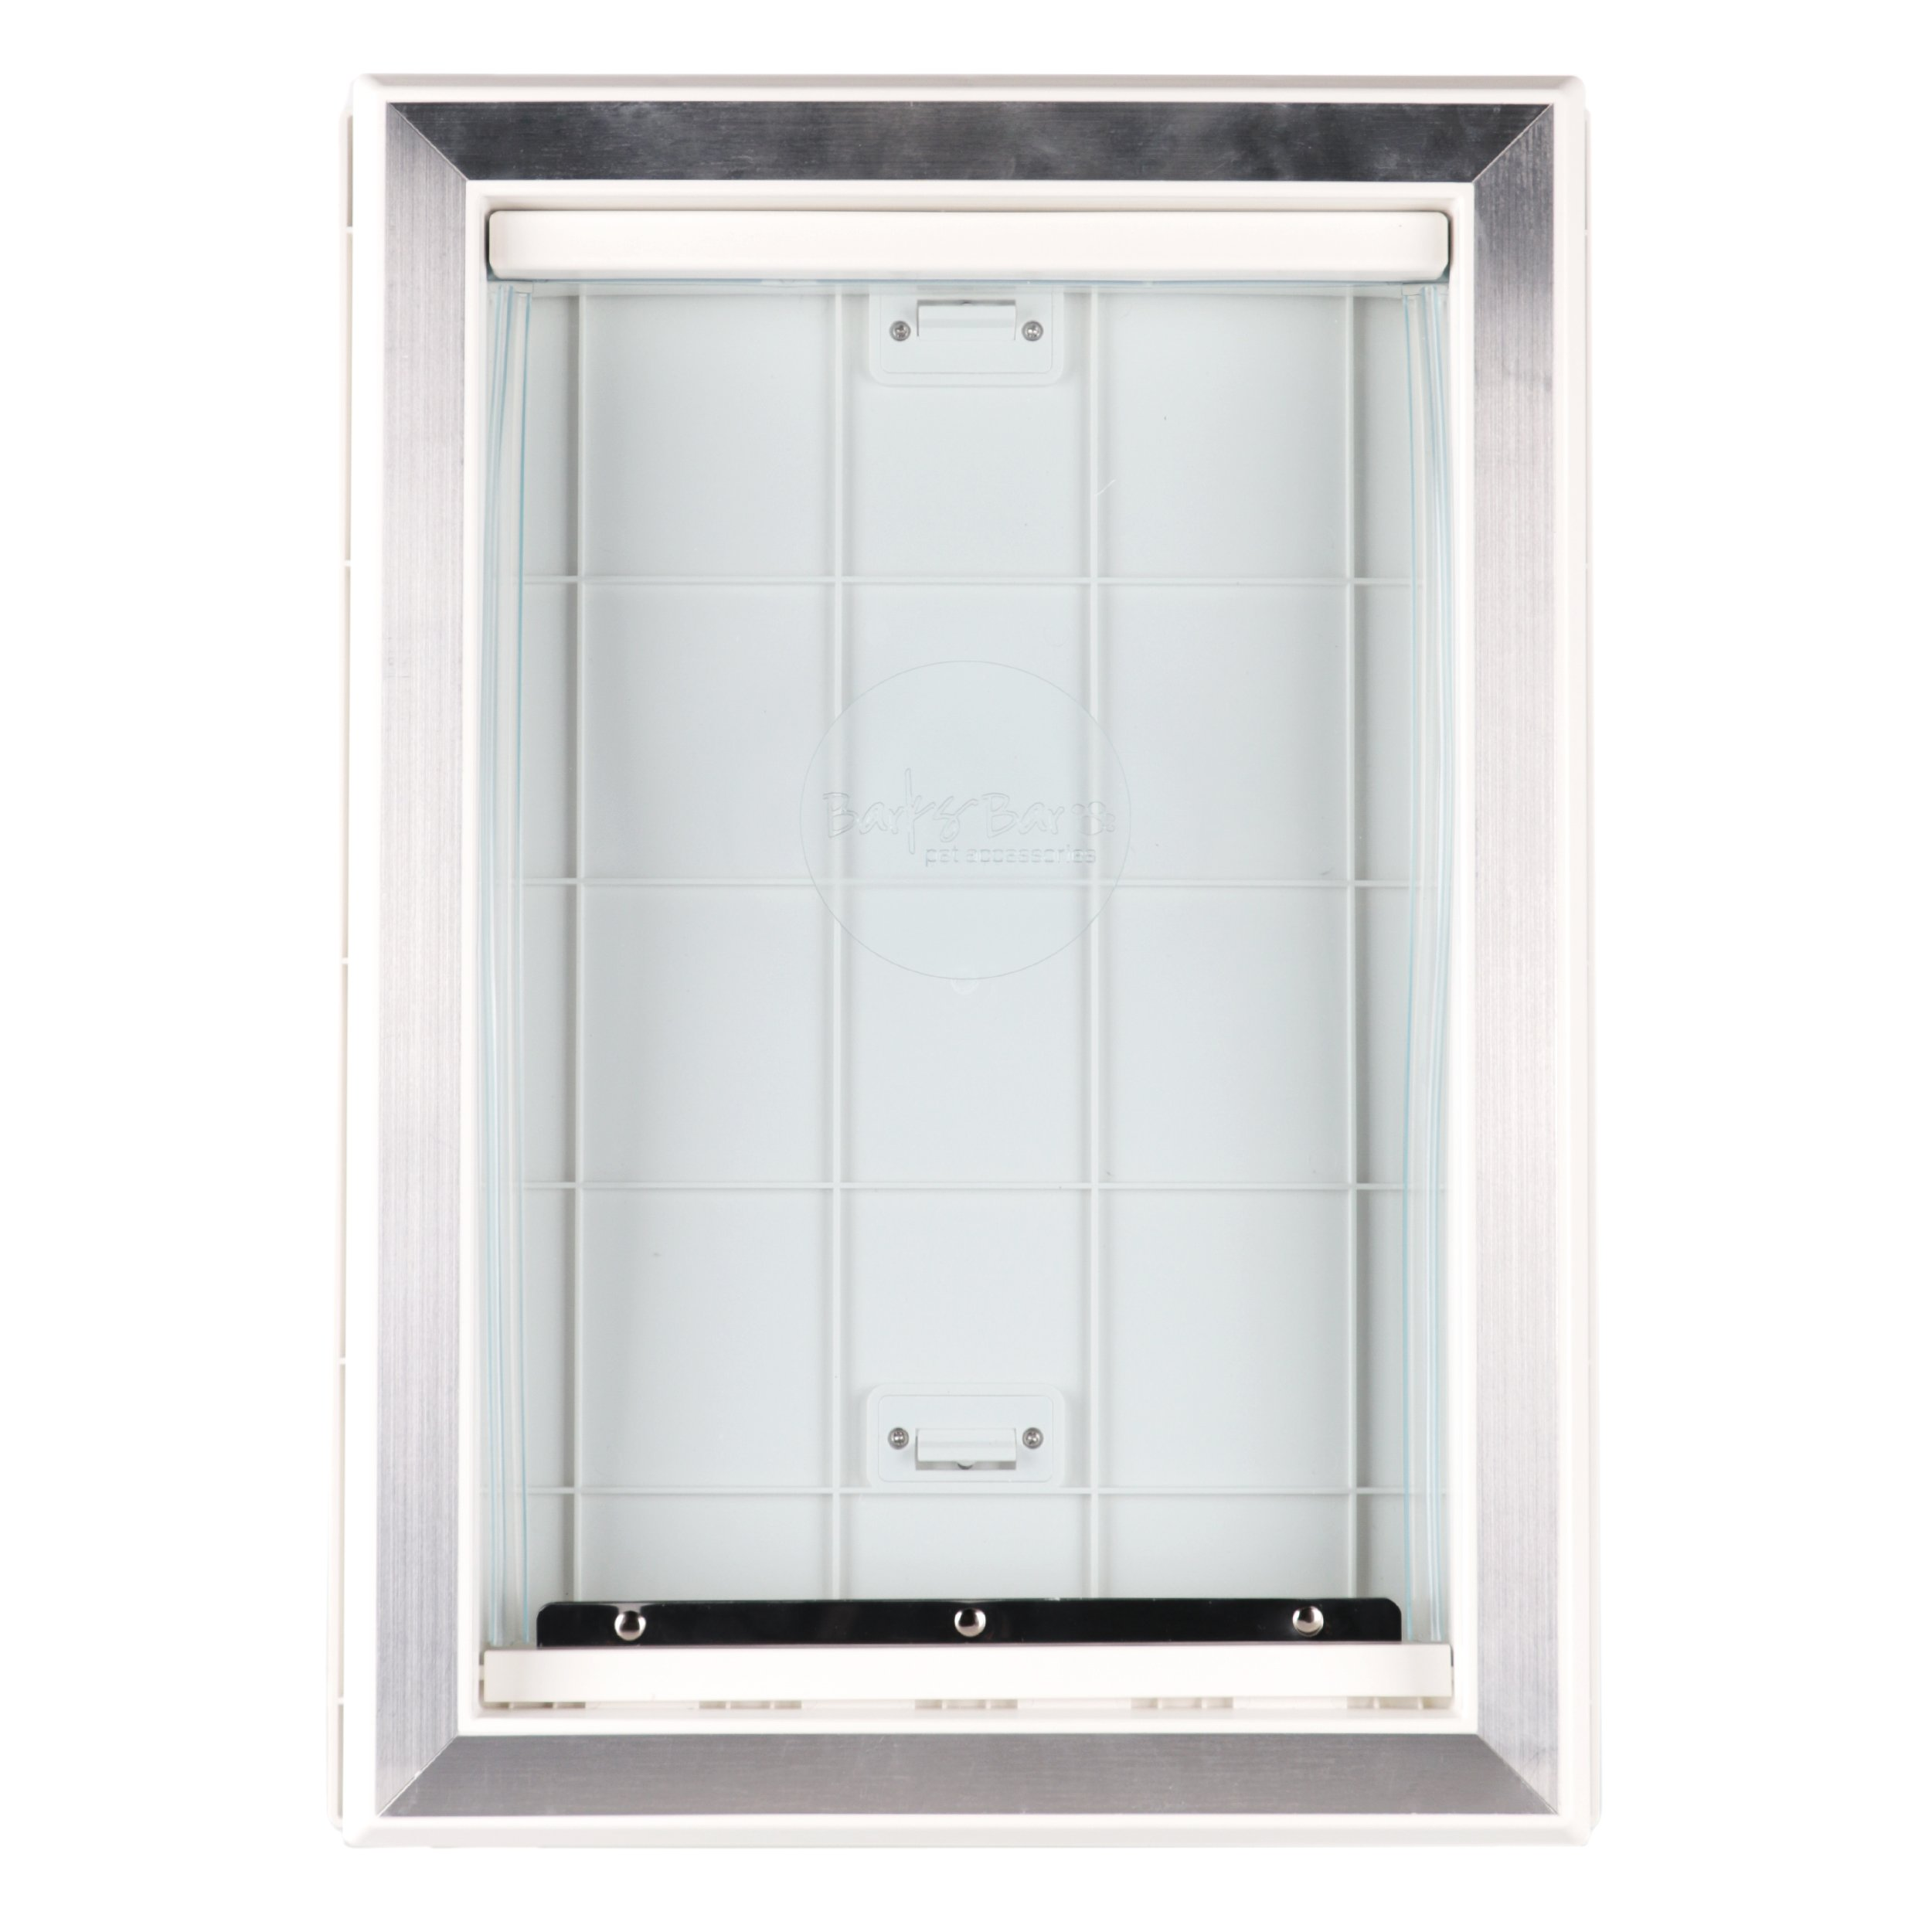 glass doors lovely petsafe framed pet dog extra suits of aluminium door weather large timber extreme